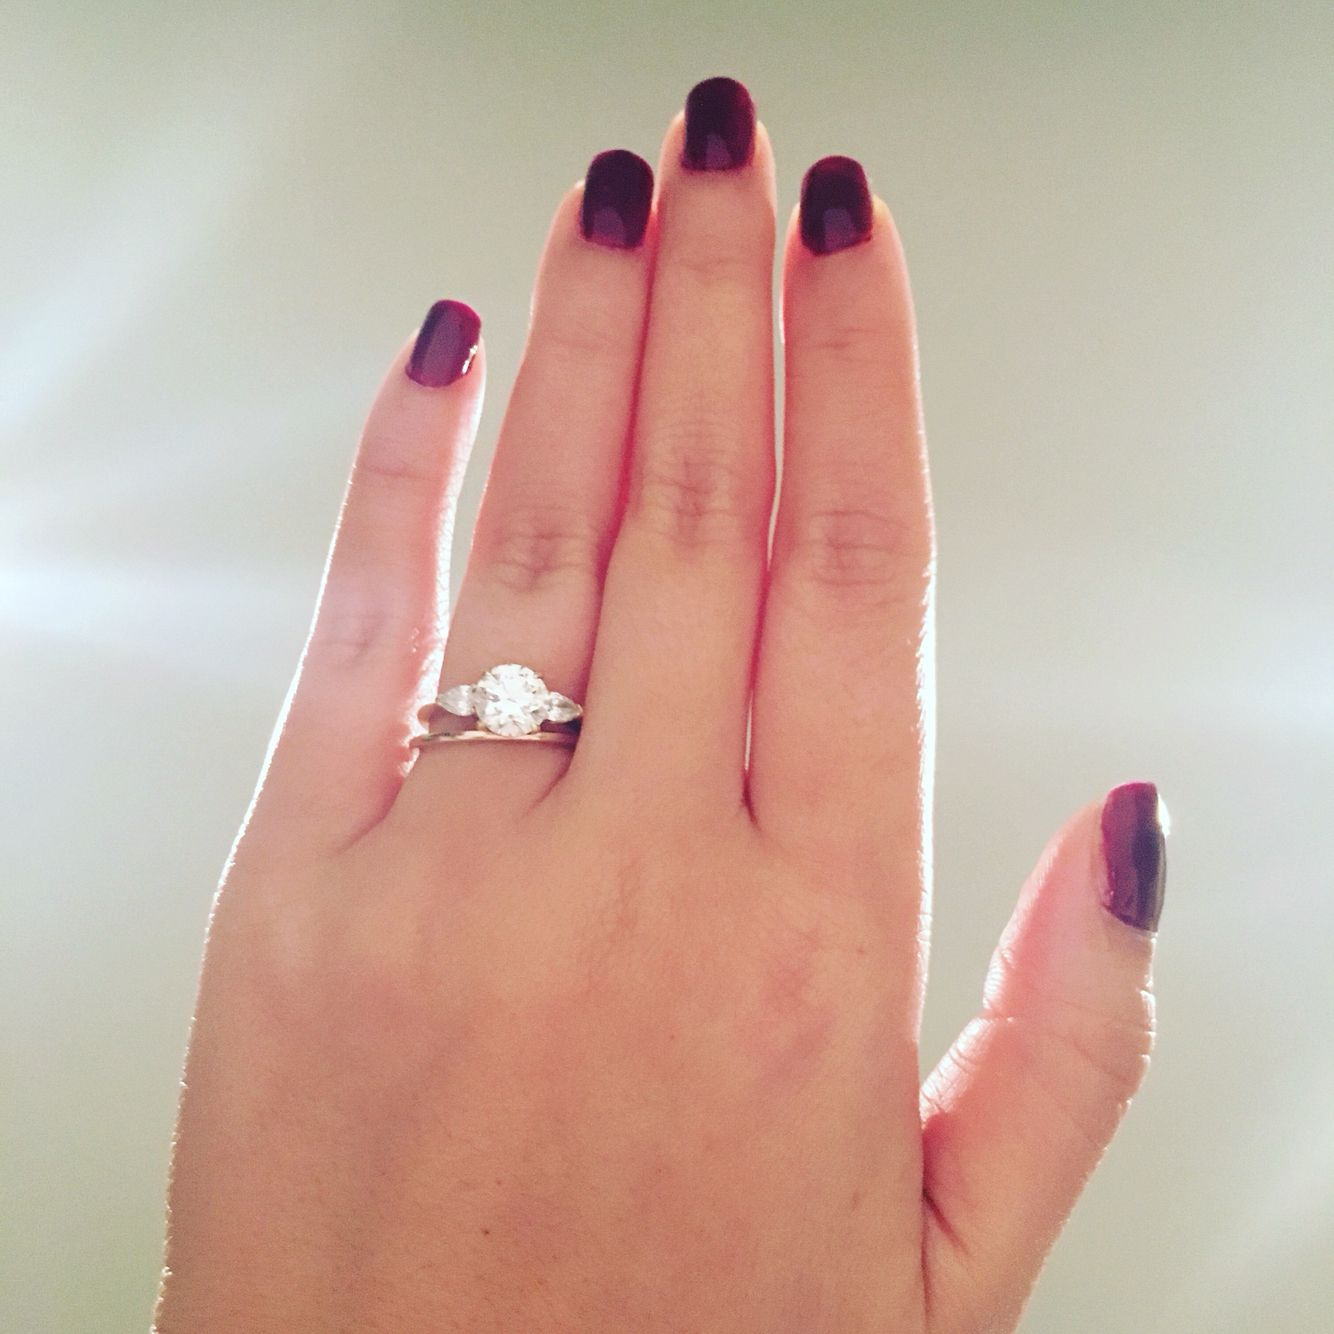 Still love my ring even if my sister\'s is bigger. 1.7ct rb center ...